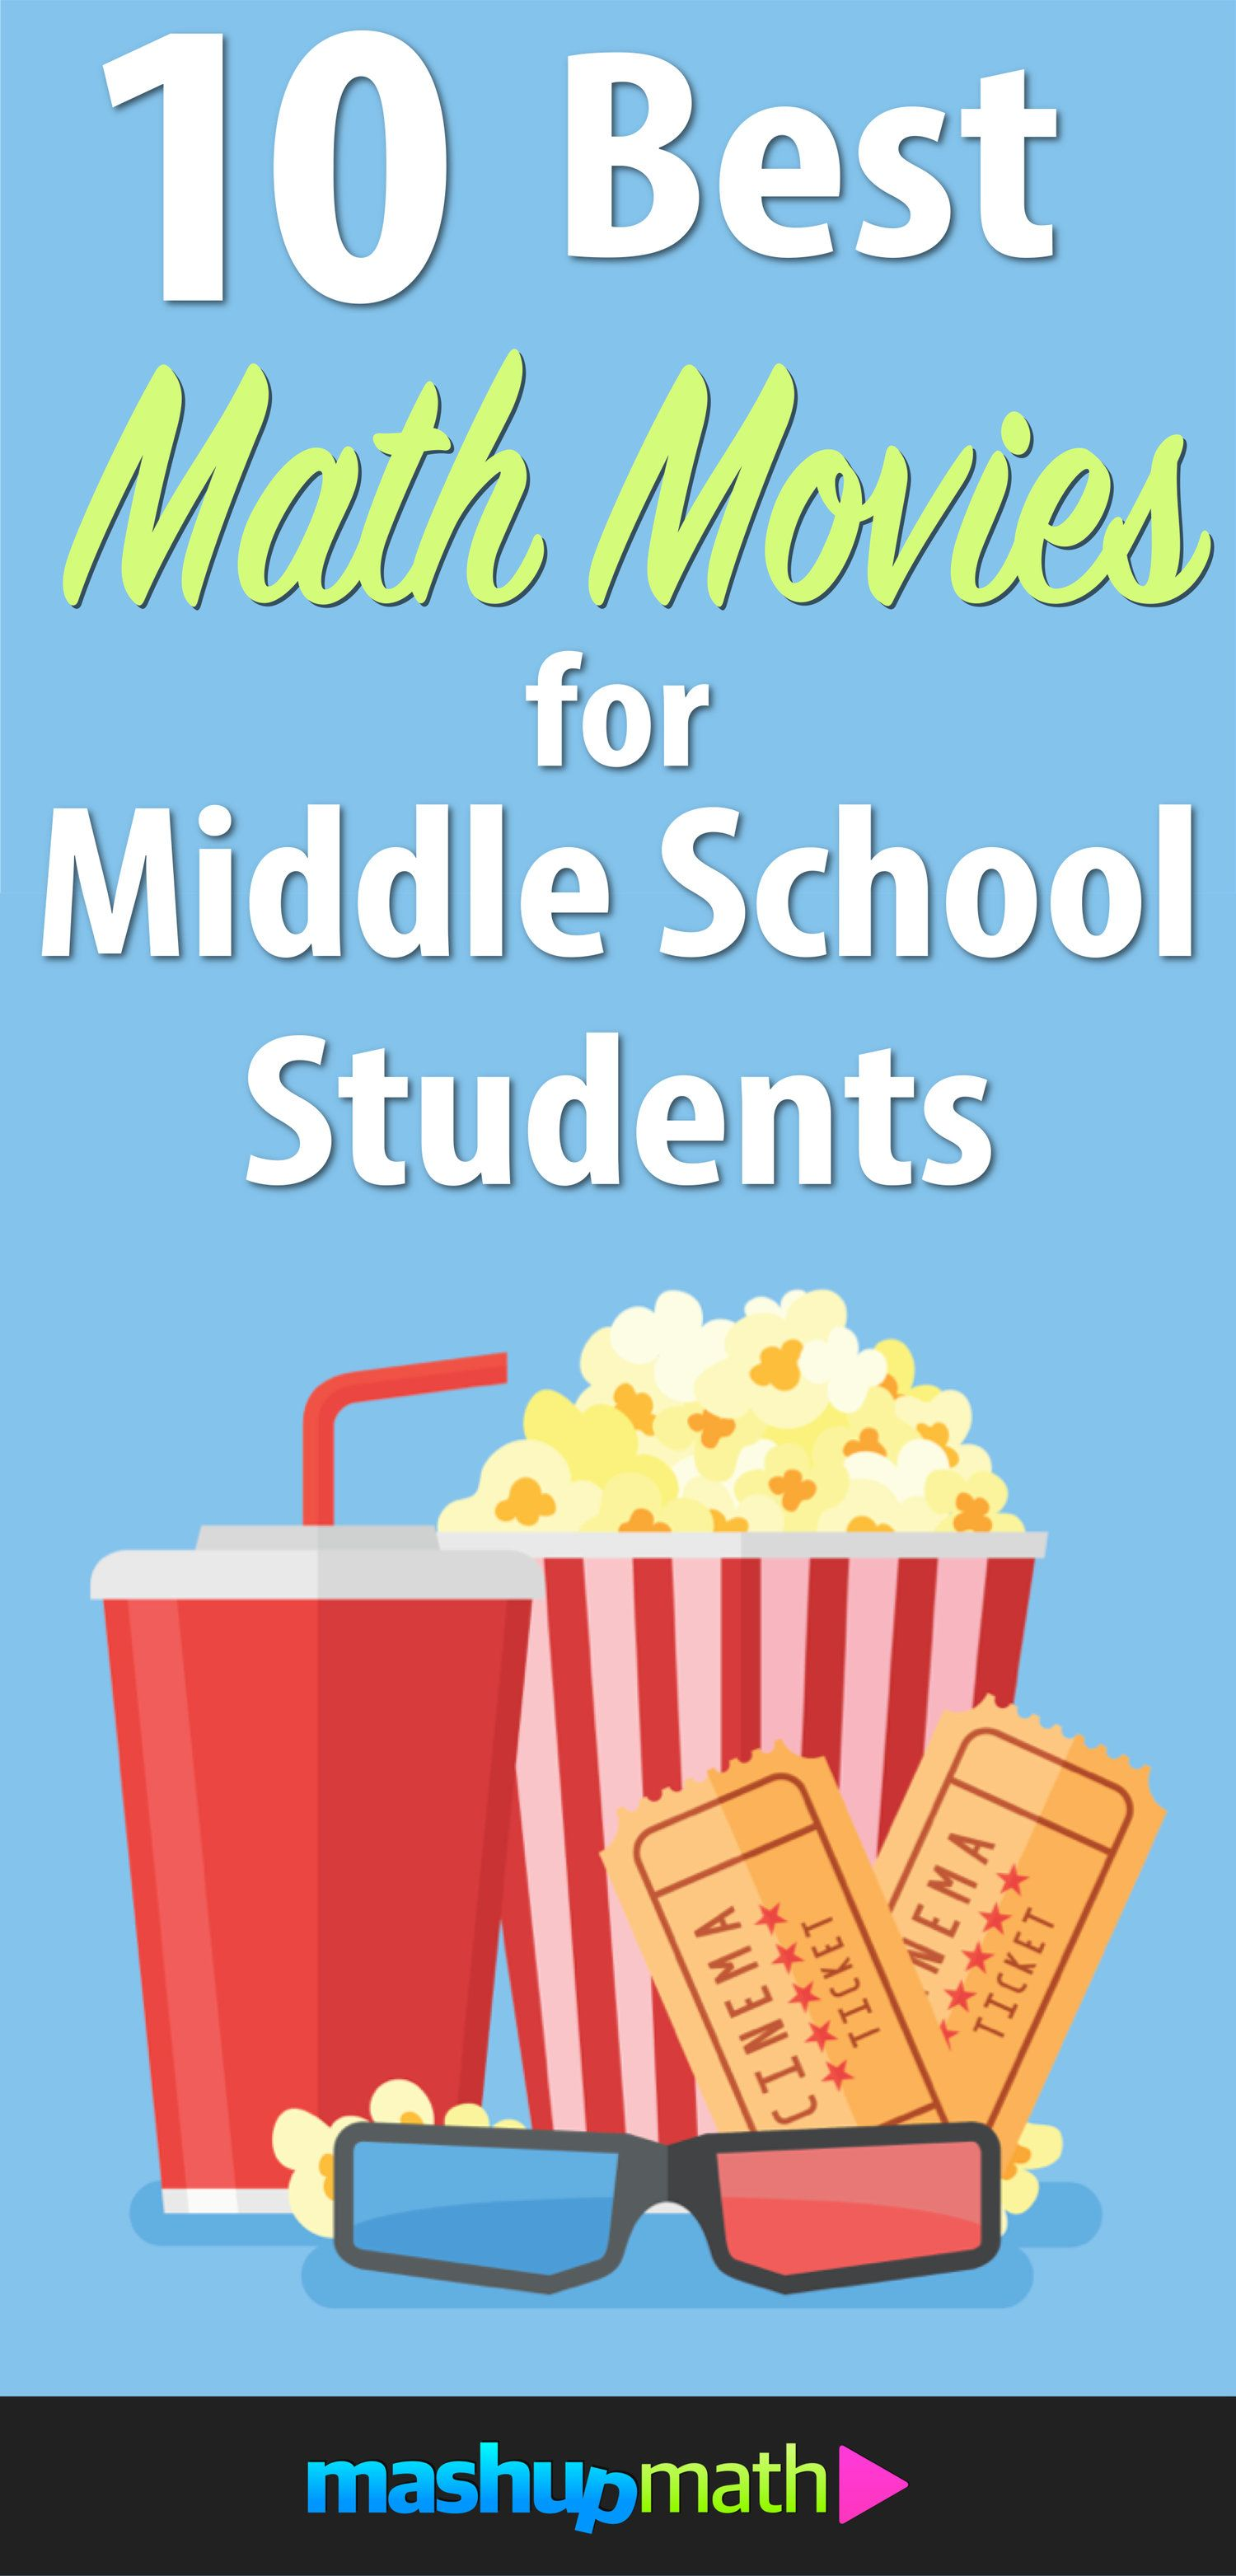 10 Best Math Movies For Middle School Students